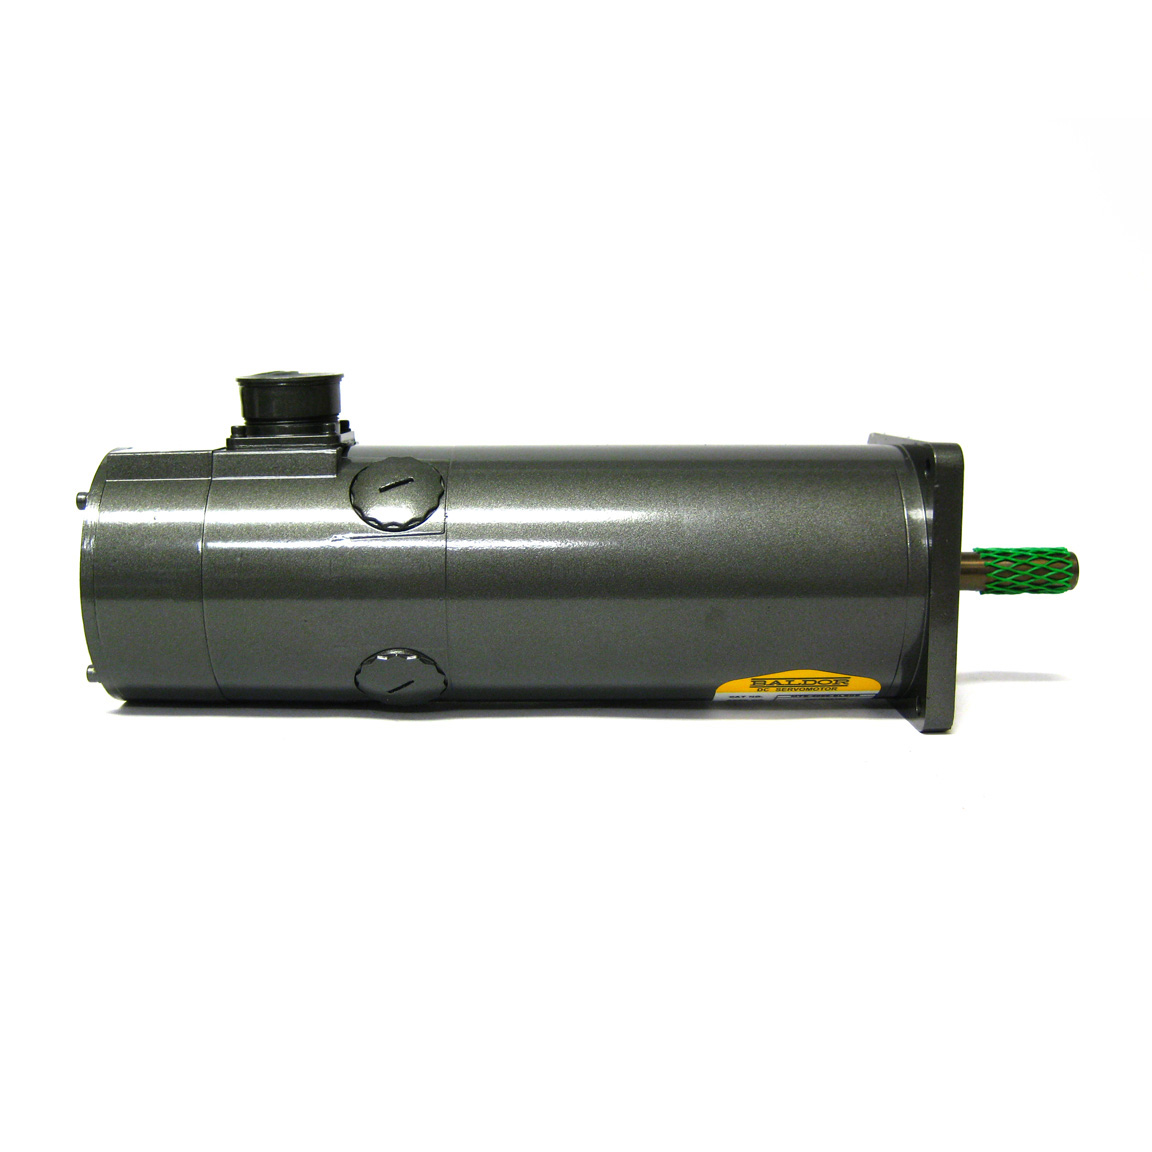 Crown Mortar Mixer also Abb Mte 4090 Blbce Dc Servo Motor also Abb Mte 4090 Blbce Dc Servo Motor together with Colombo Rce 90 22 Spindle Motor besides Electric Motor Clipart. on baldor electric motor parts